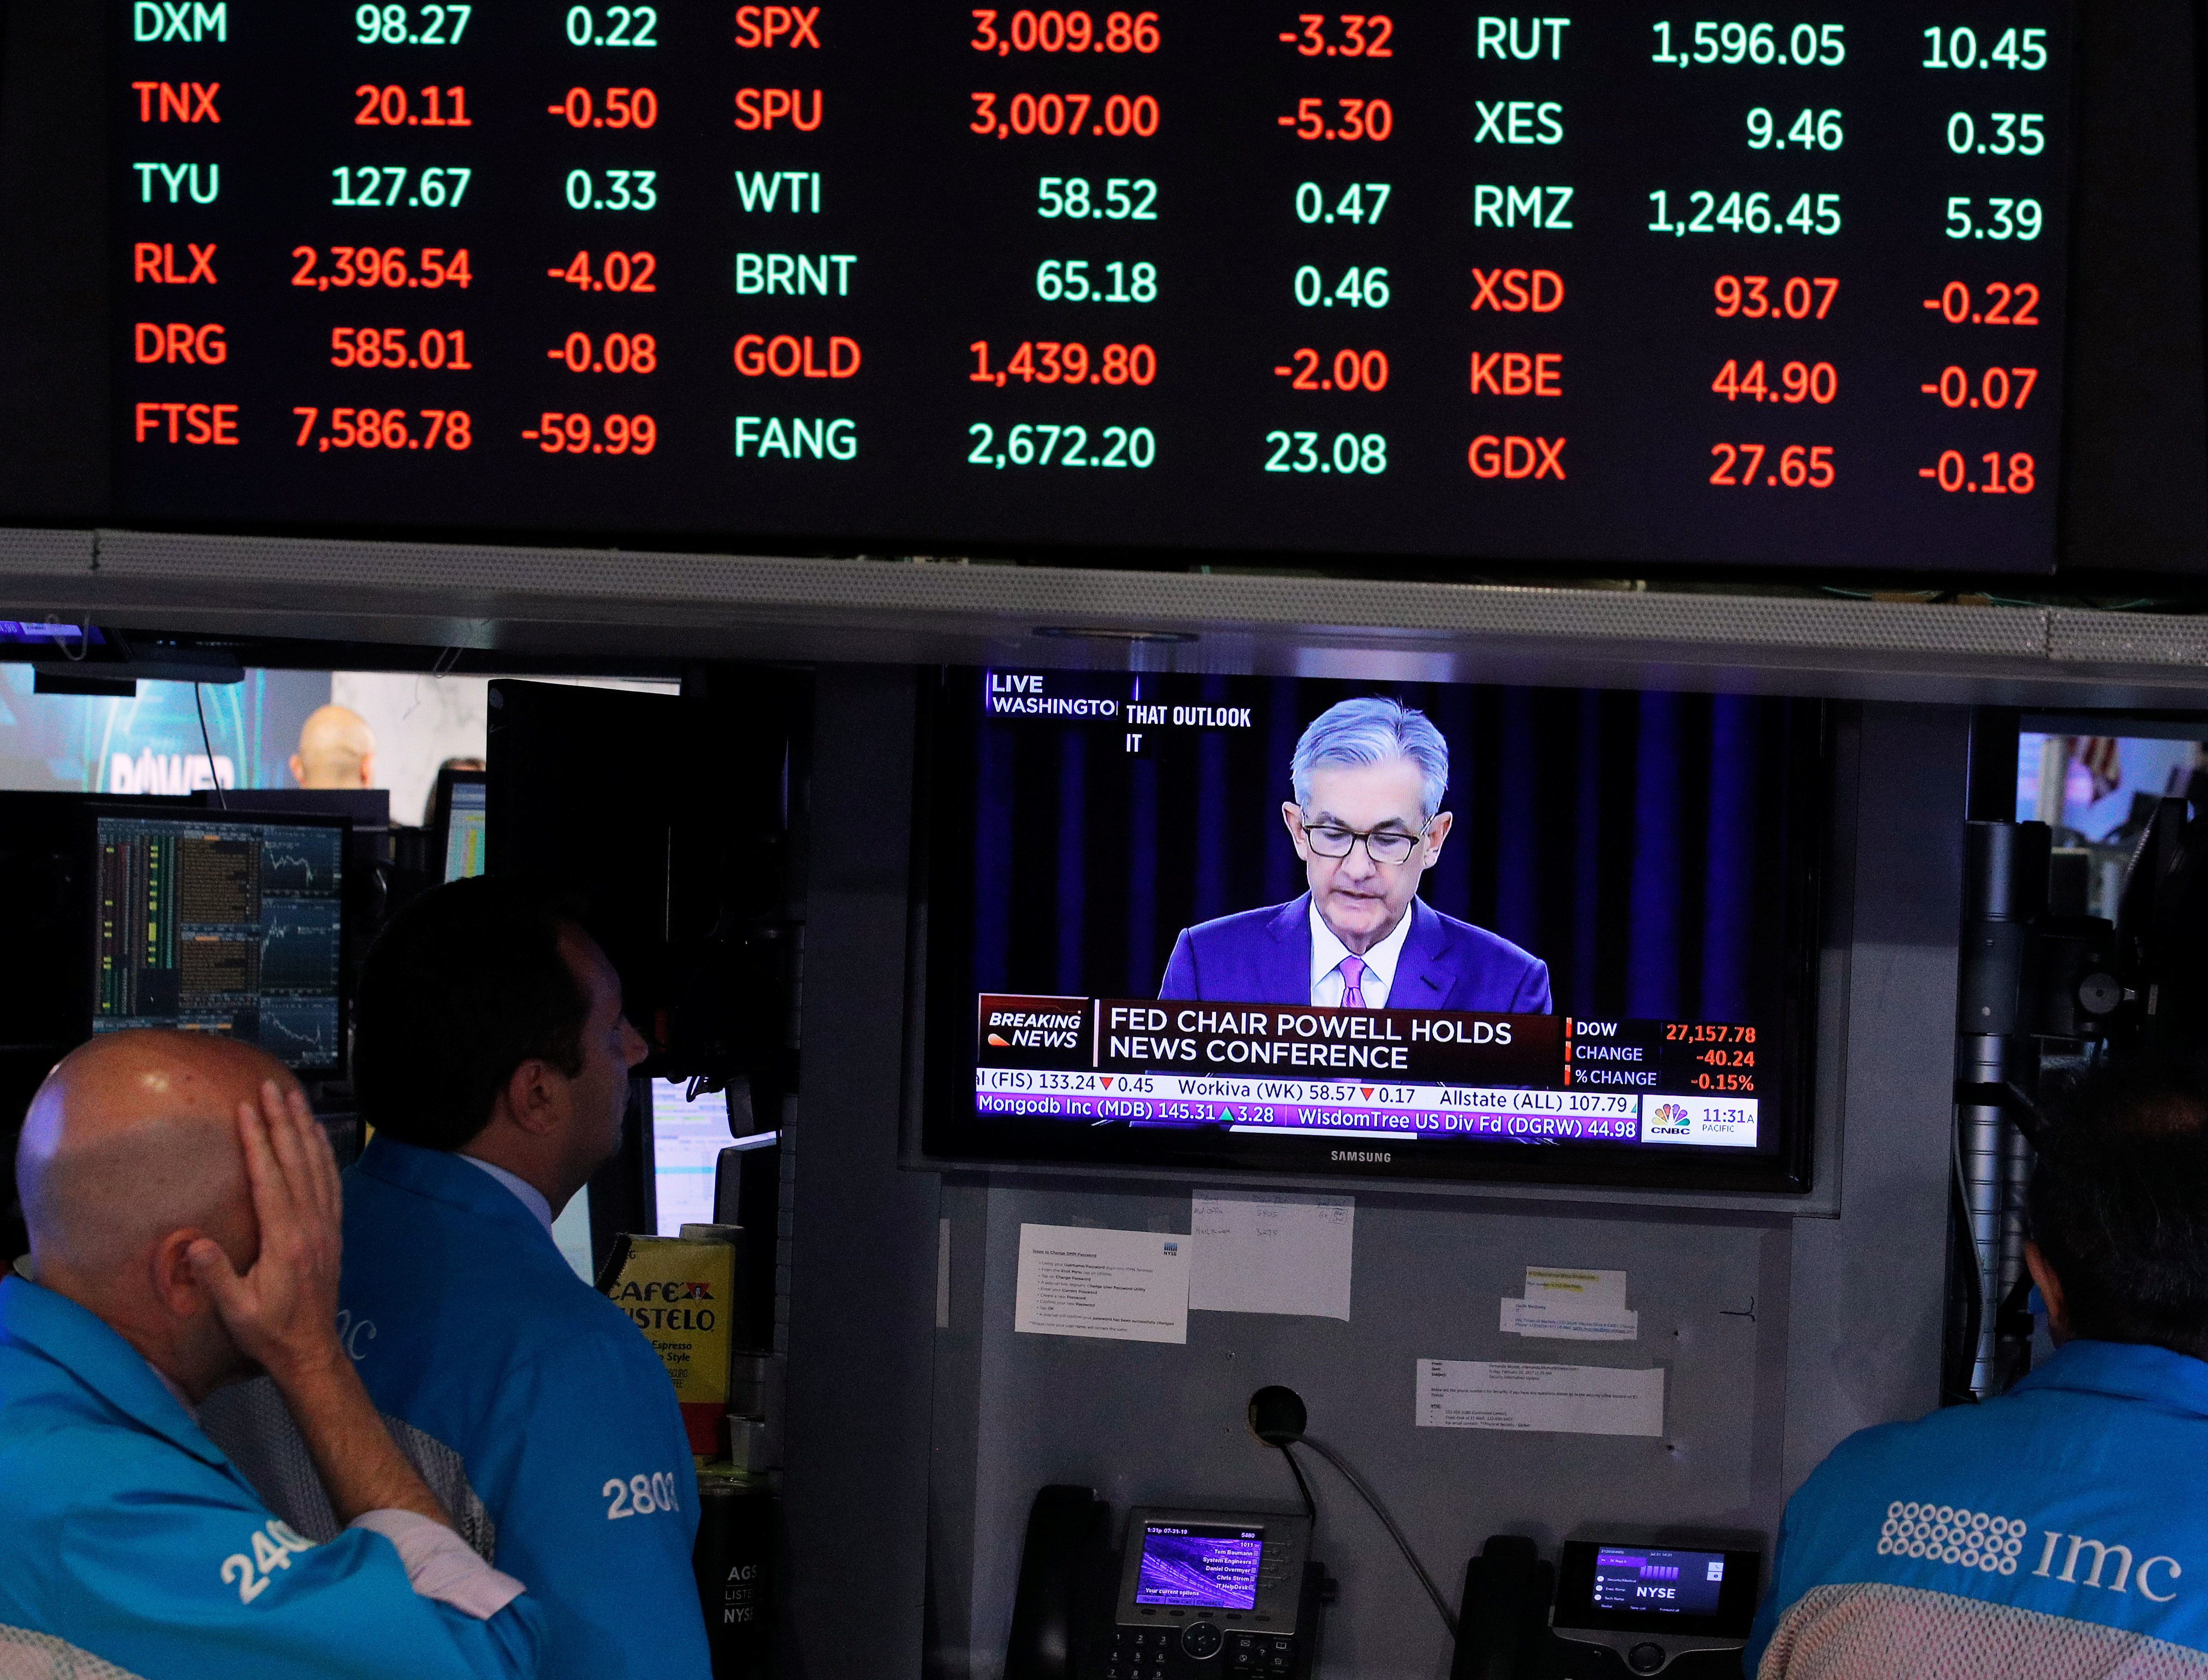 Traders look on as a screen shows Federal Reserve Chairman Jerome Powell's news conference after the U.S. Federal Reserve interest rates announcement on the floor of the New York Stock Exchange (NYSE) in New York, U.S., July 31, 2019. REUTERS/Brendan McDermid/File Photo